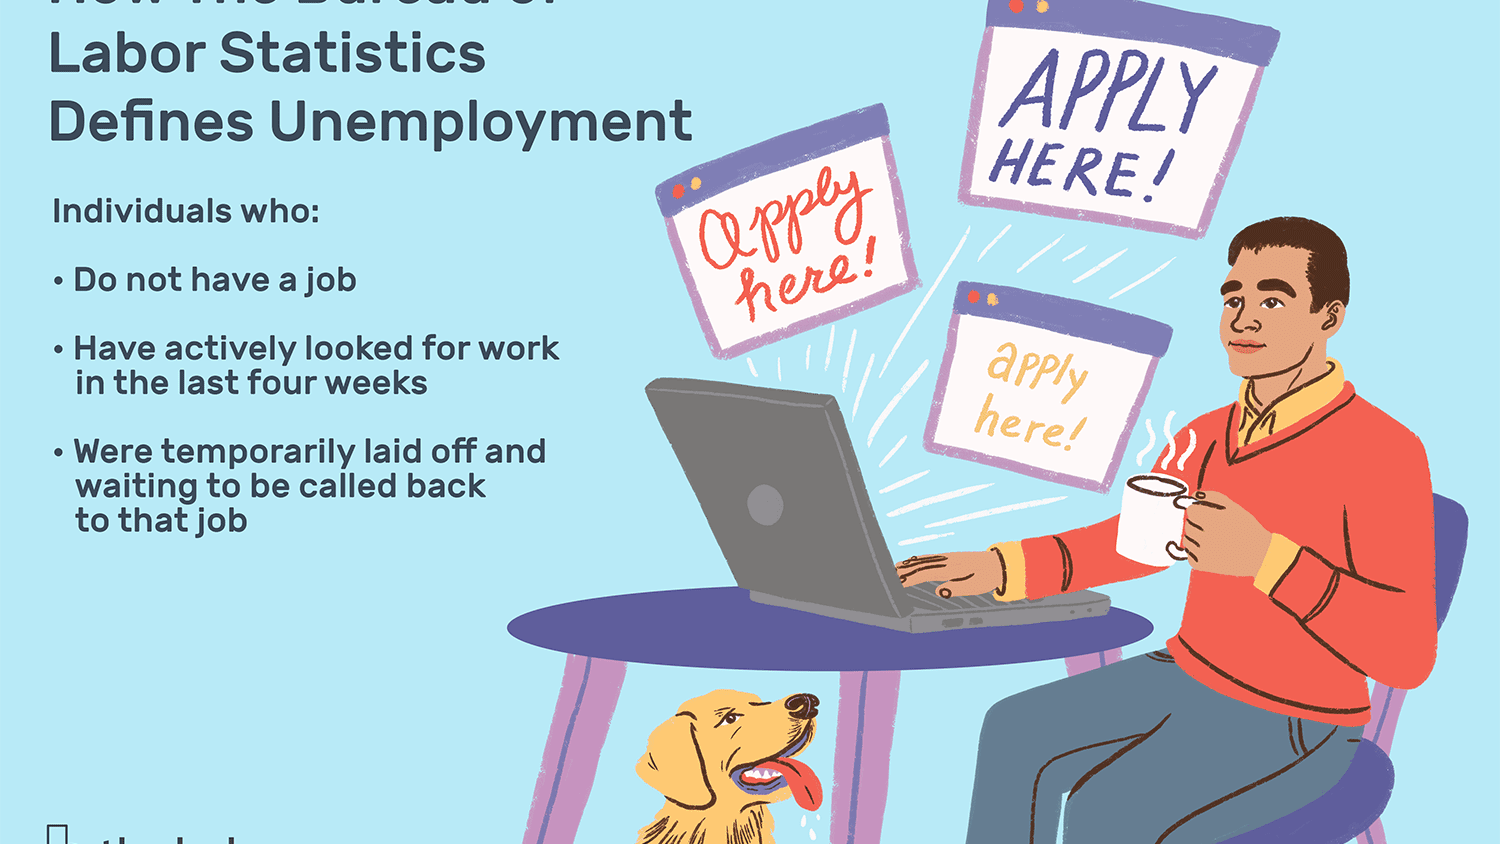 Hiring People With Disabilities Isnt Just The Right Thing >> Unemployment Definition How It S Used Causes Impact